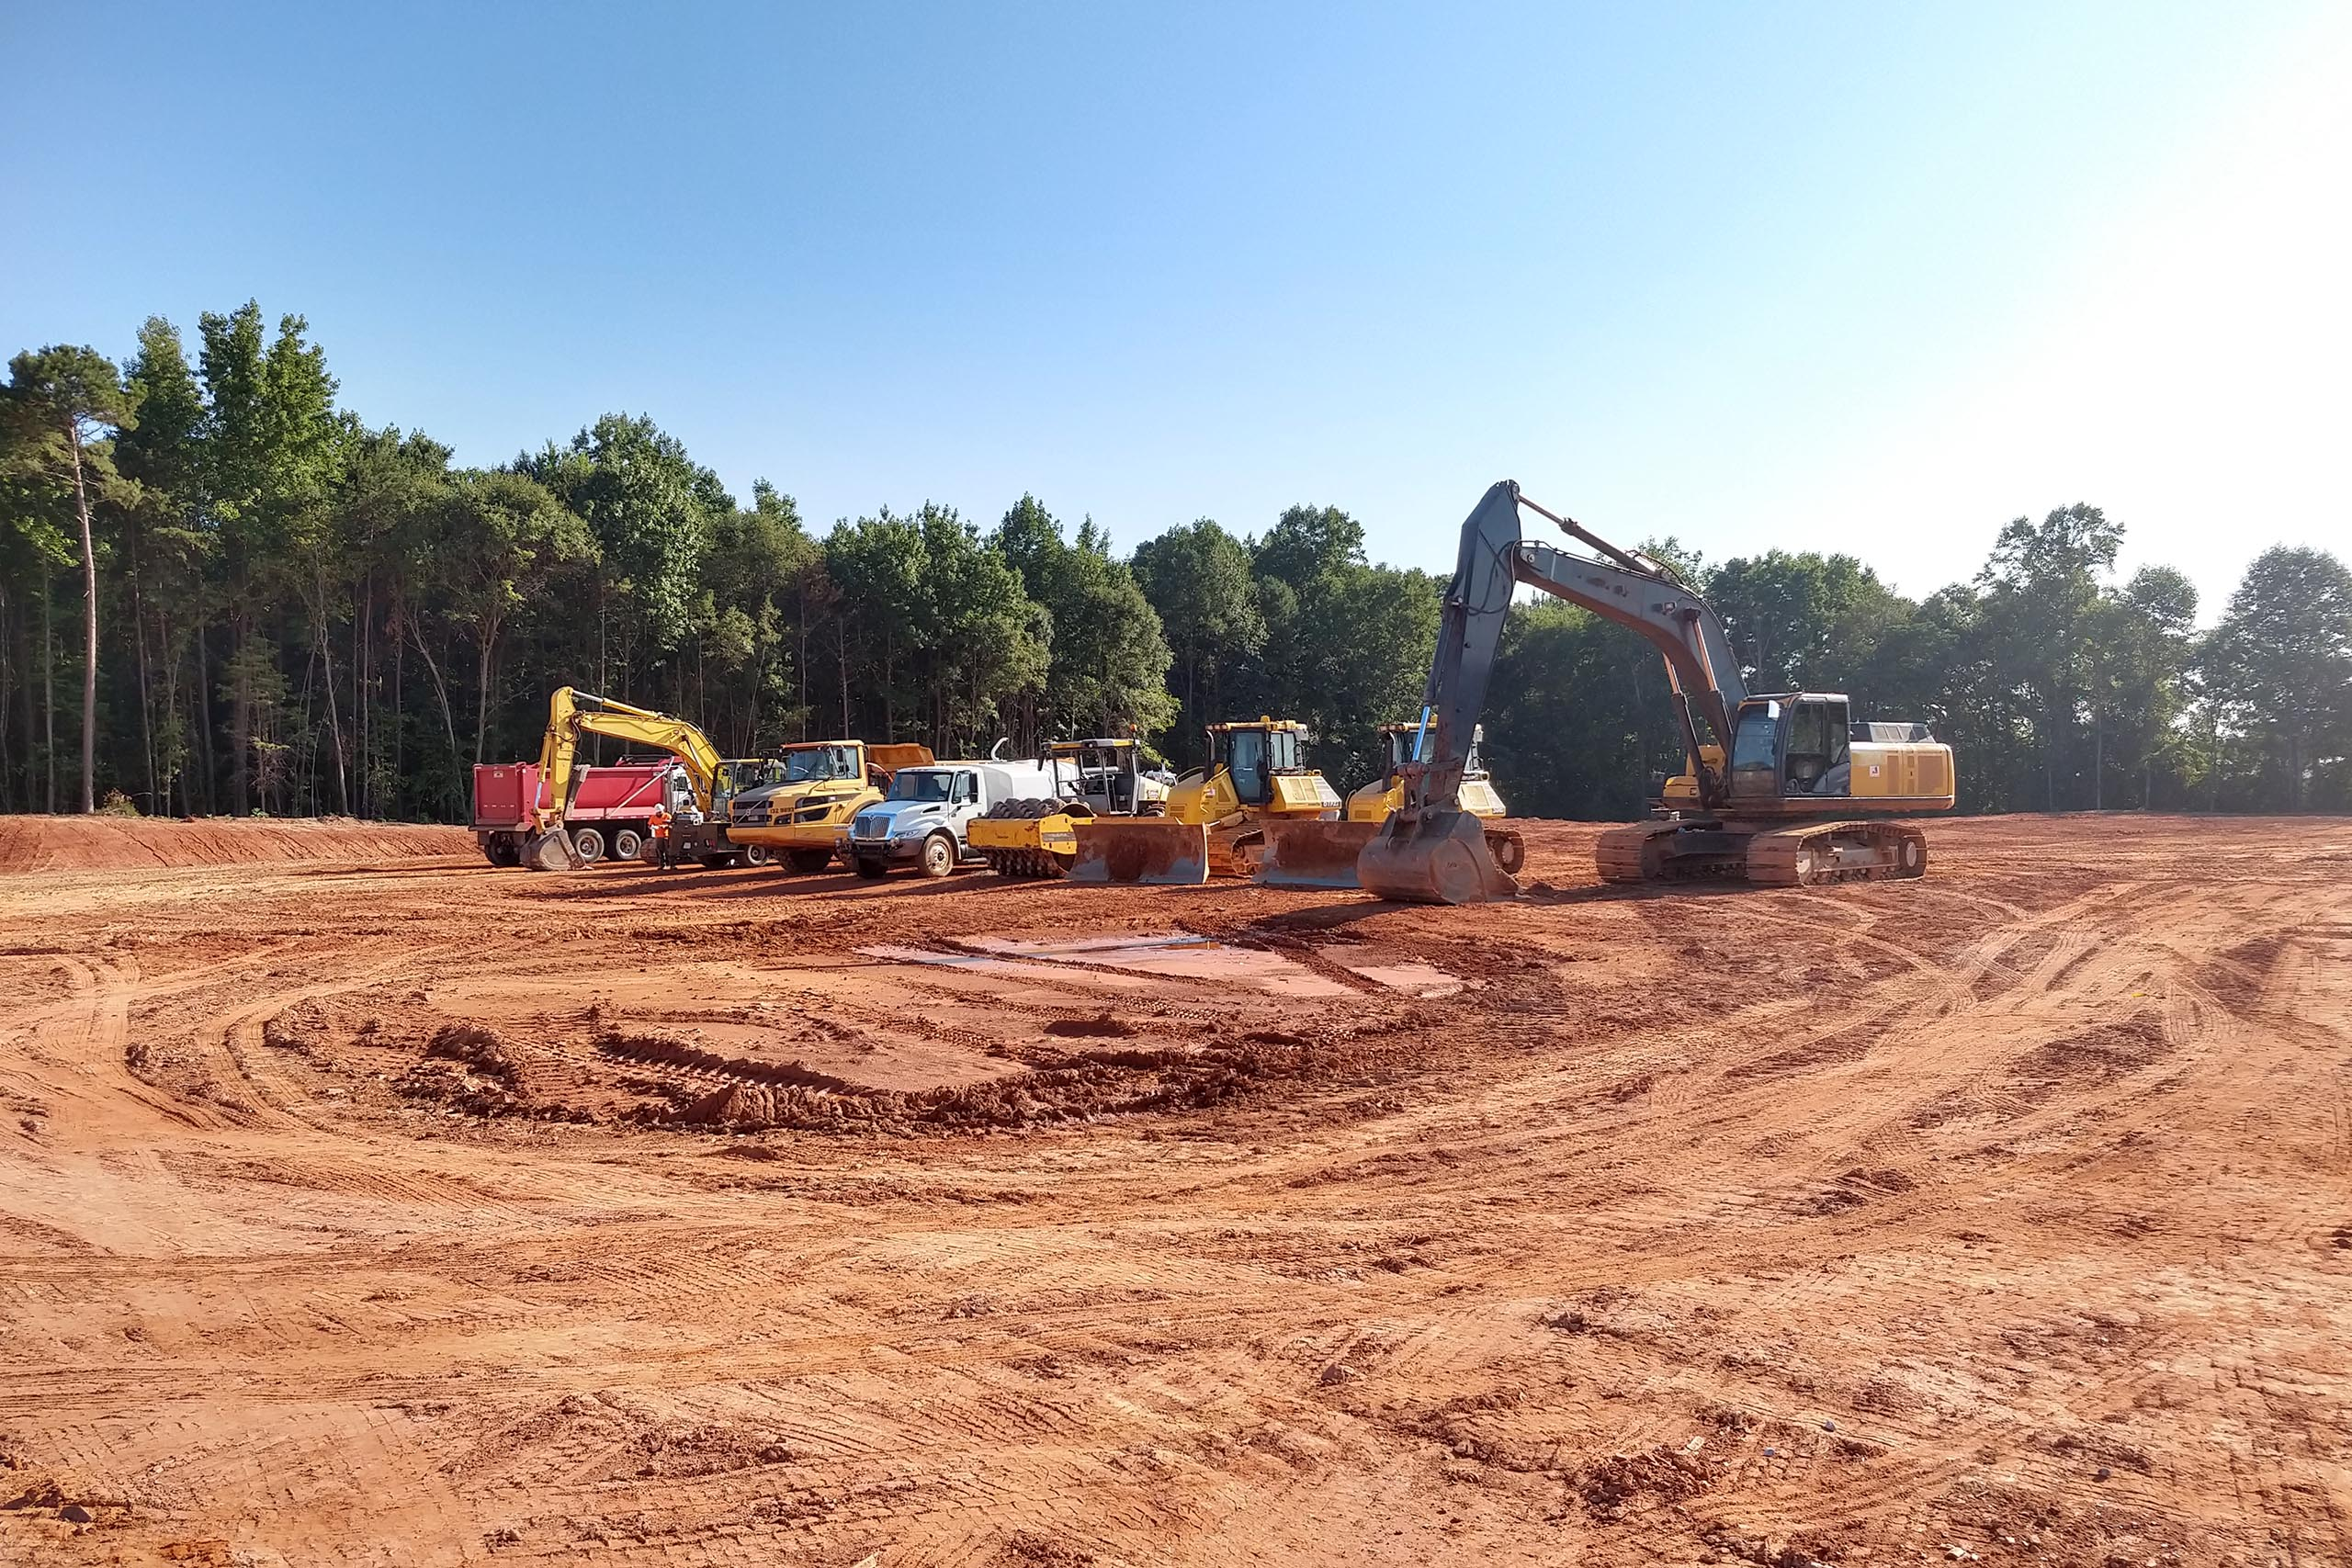 lineup of heavy equipment machinery and vehicles